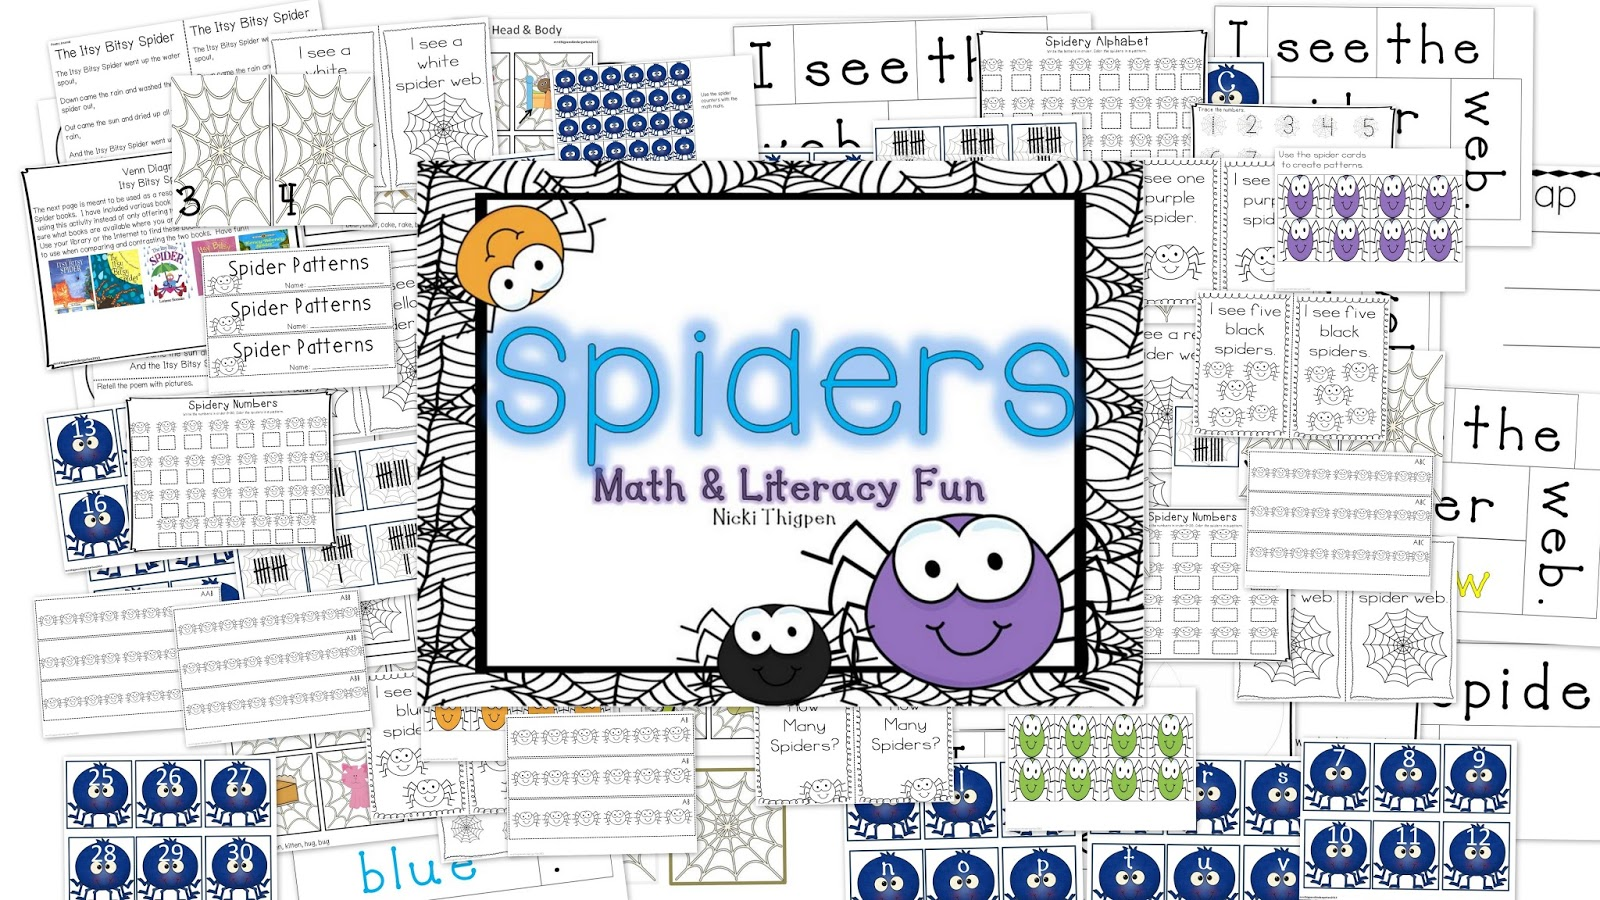 http://www.teacherspayteachers.com/Product/Spiders-Math-and-Literacy-Activities-362114